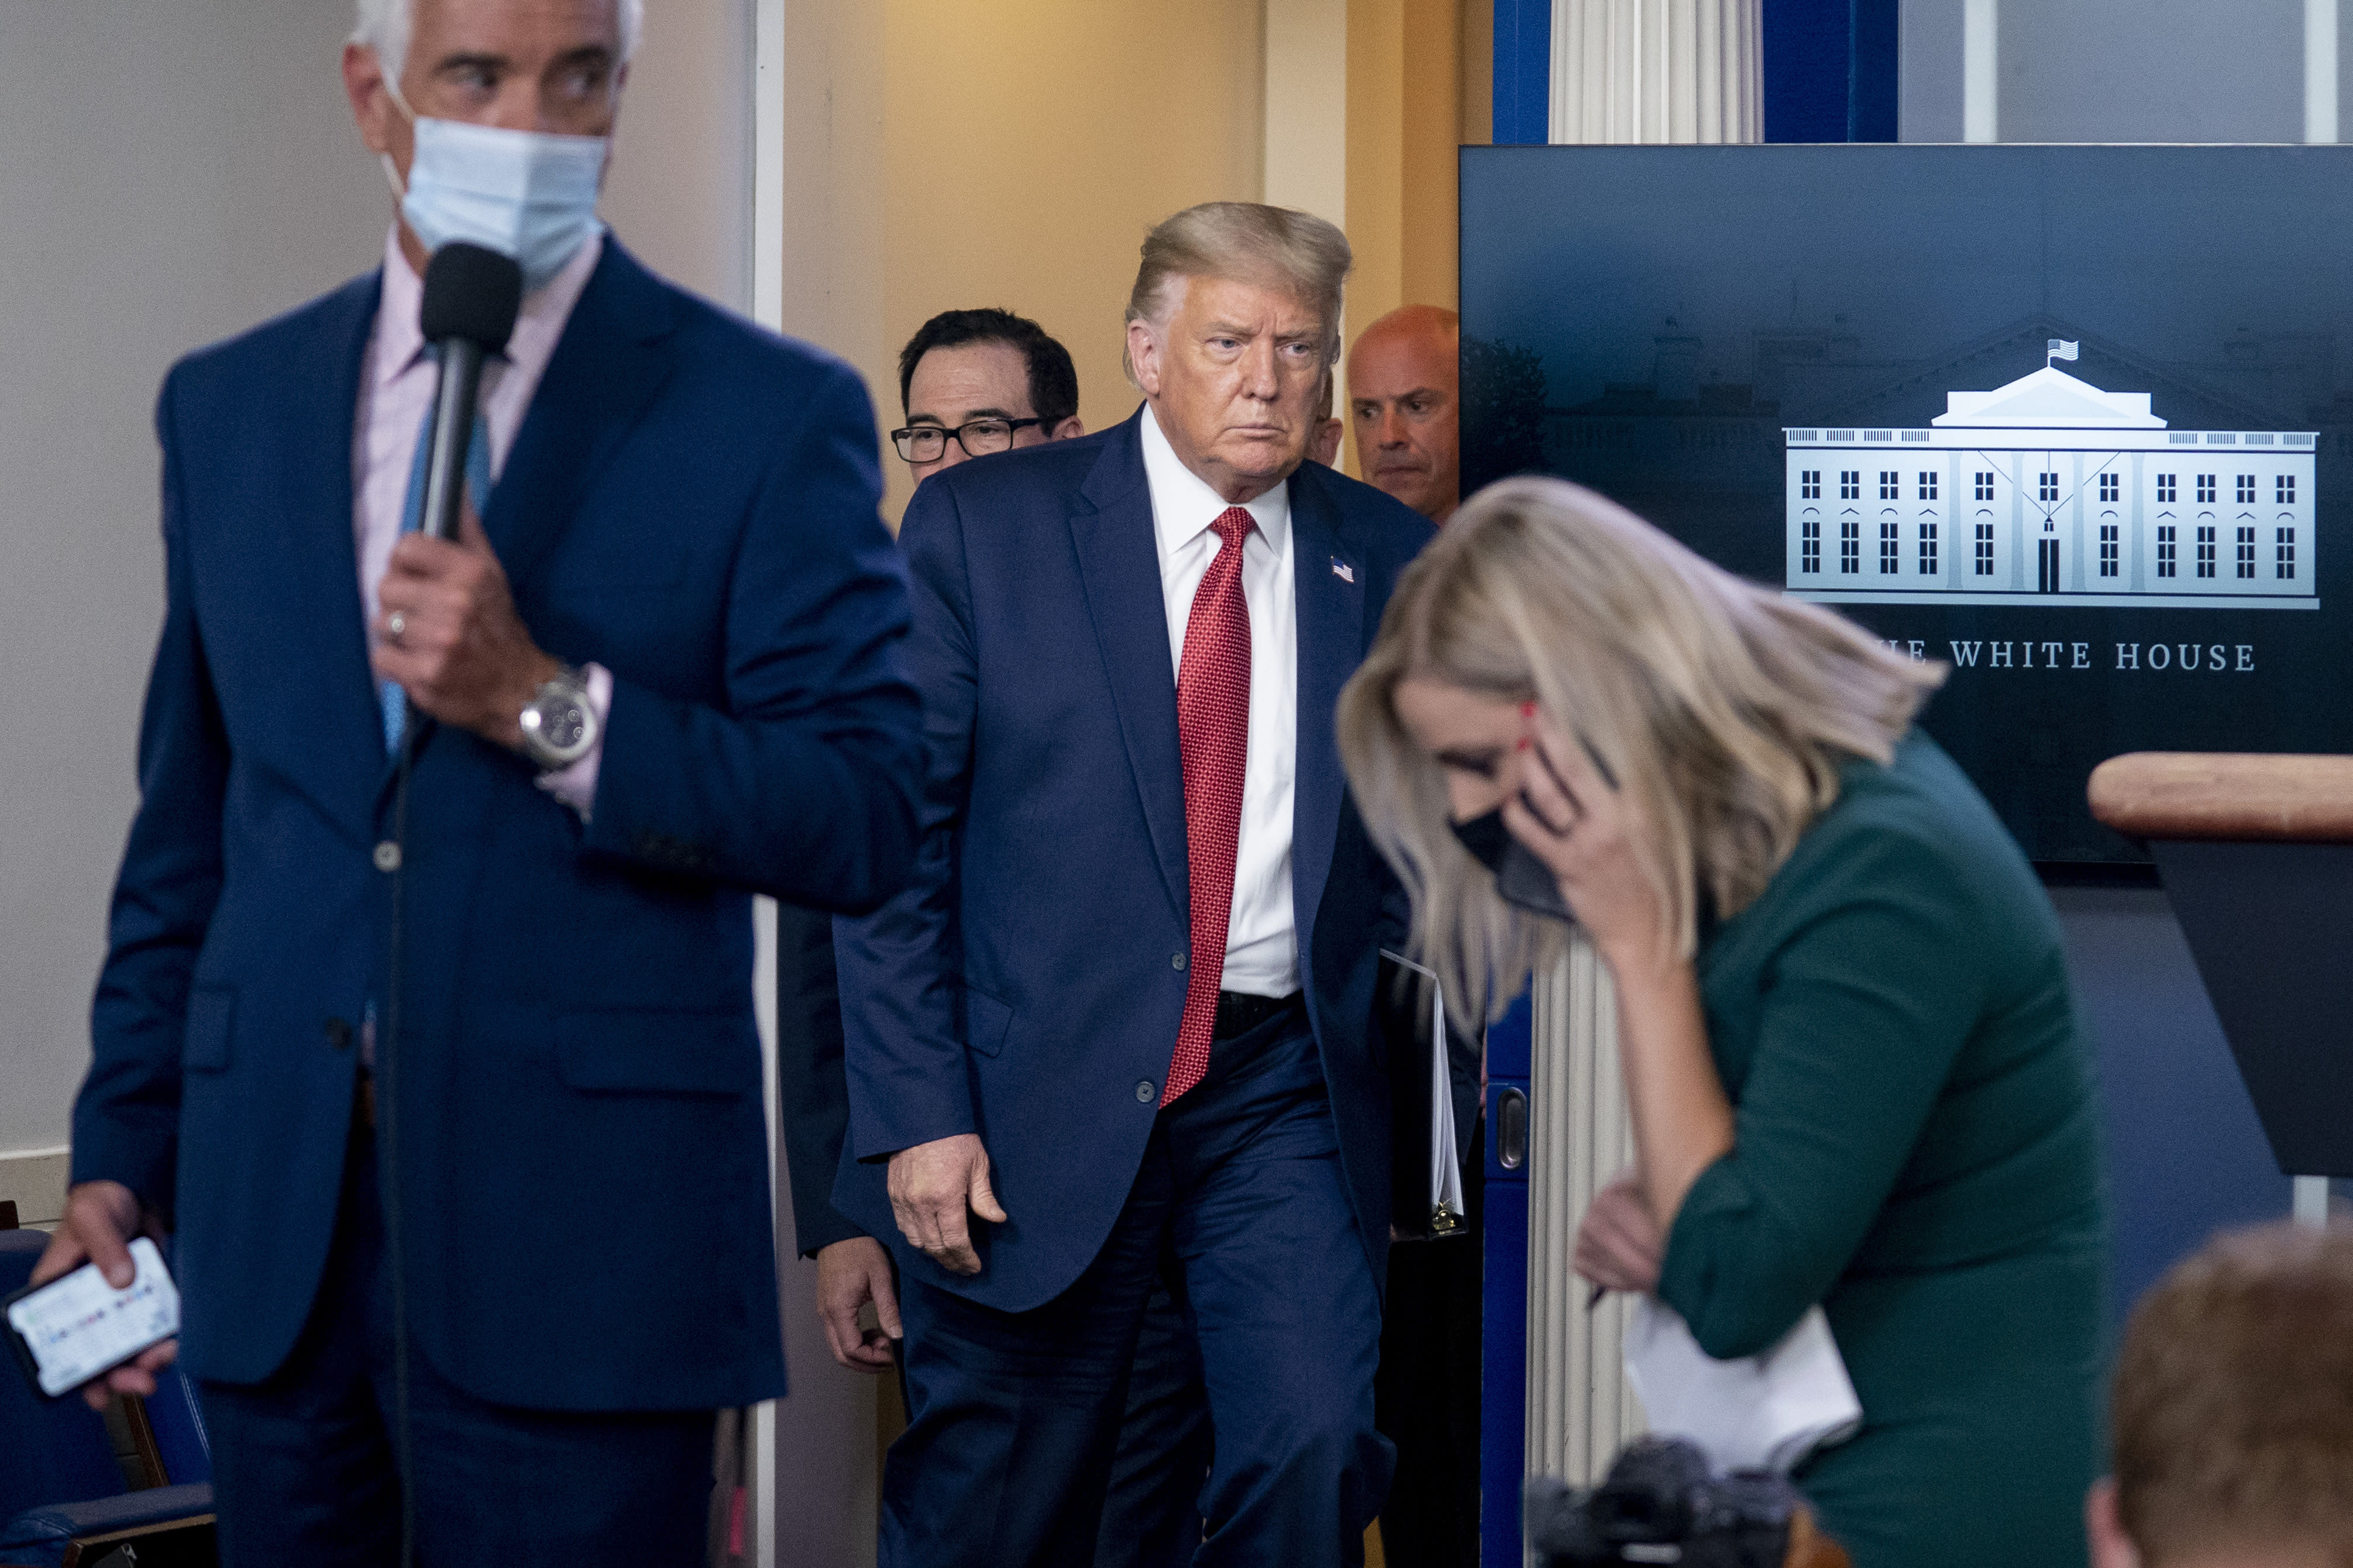 Trump leaves briefing after shooting near White House